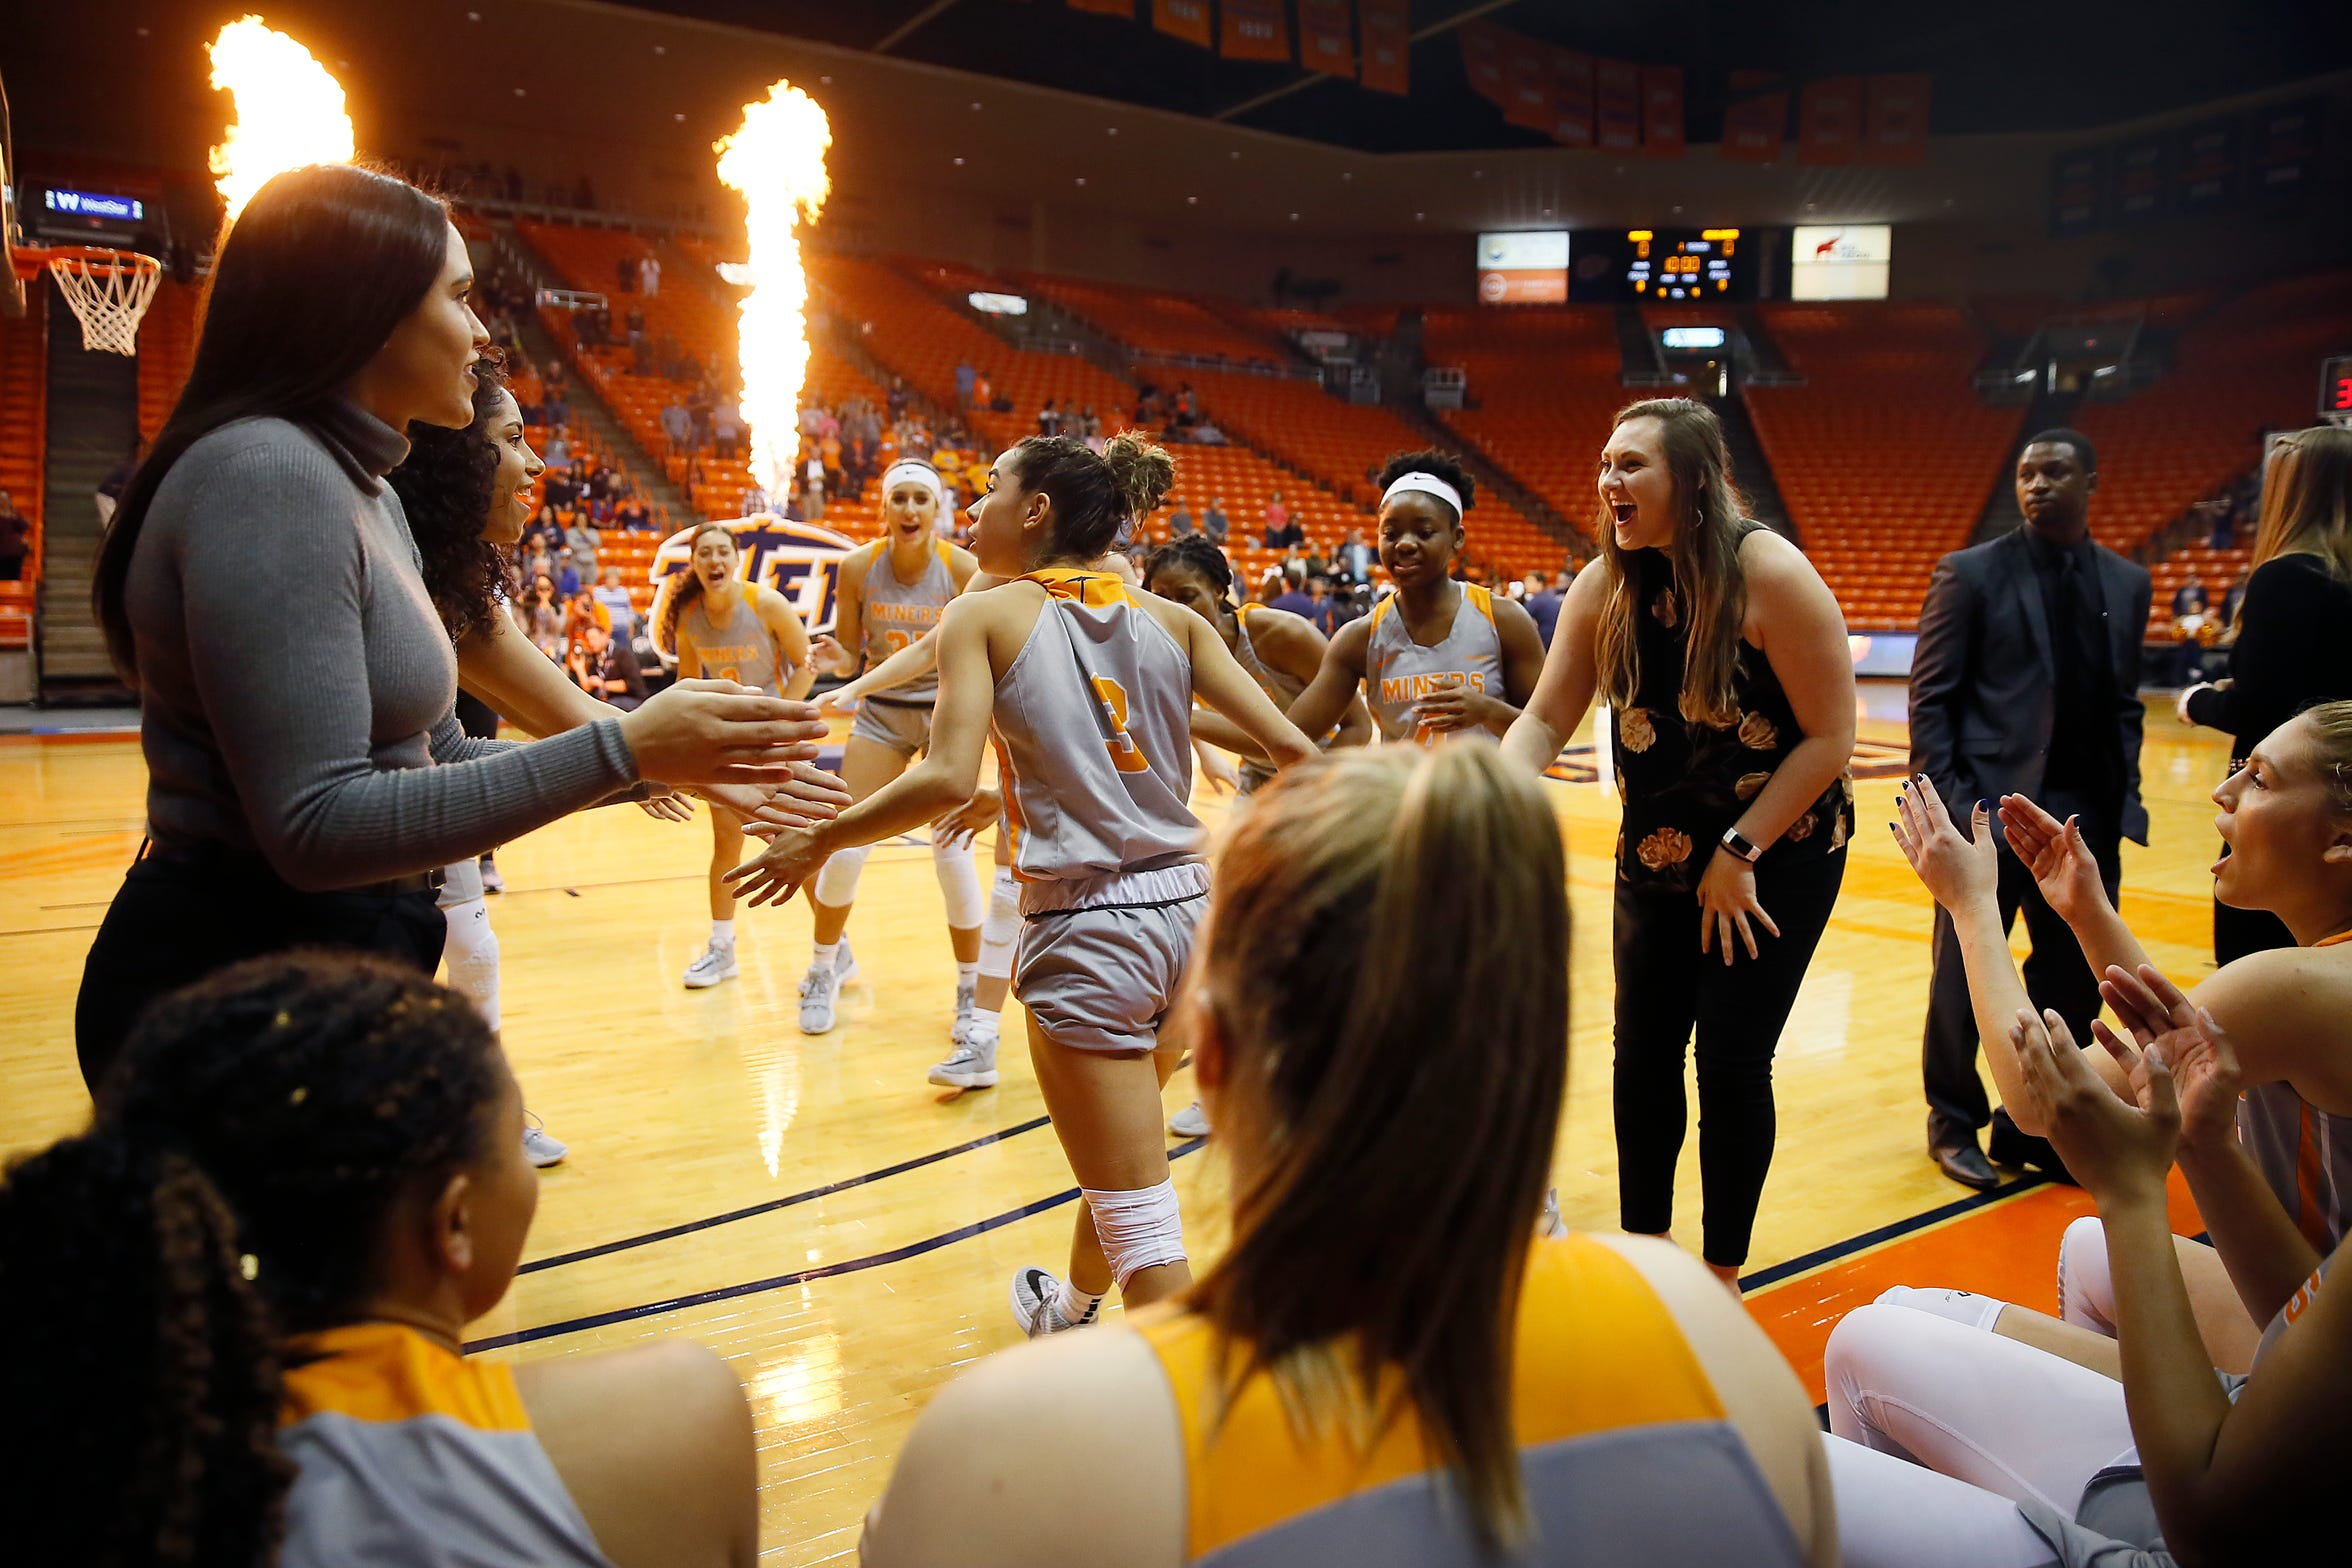 UTEP's Katia Gallegos takes the court for the game against Cal Riverside in the season opener Saturday, Nov. 9, at the Don Haskins Center in El Paso.